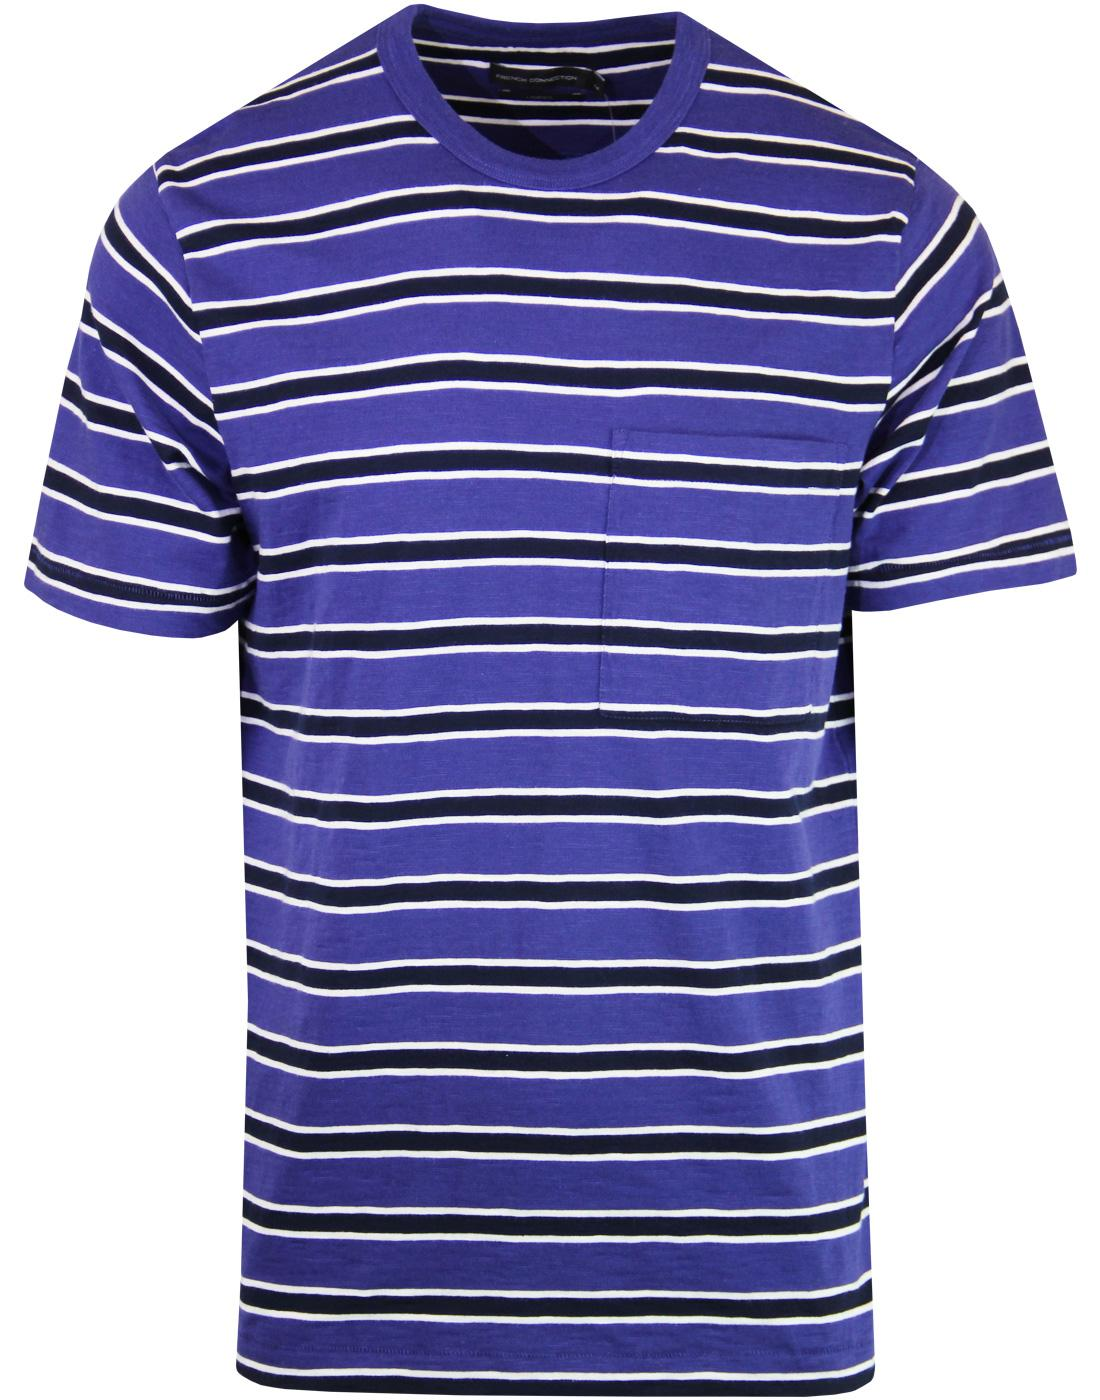 FRENCH CONNECTION Retro Mod Multi Stripe T-shirt